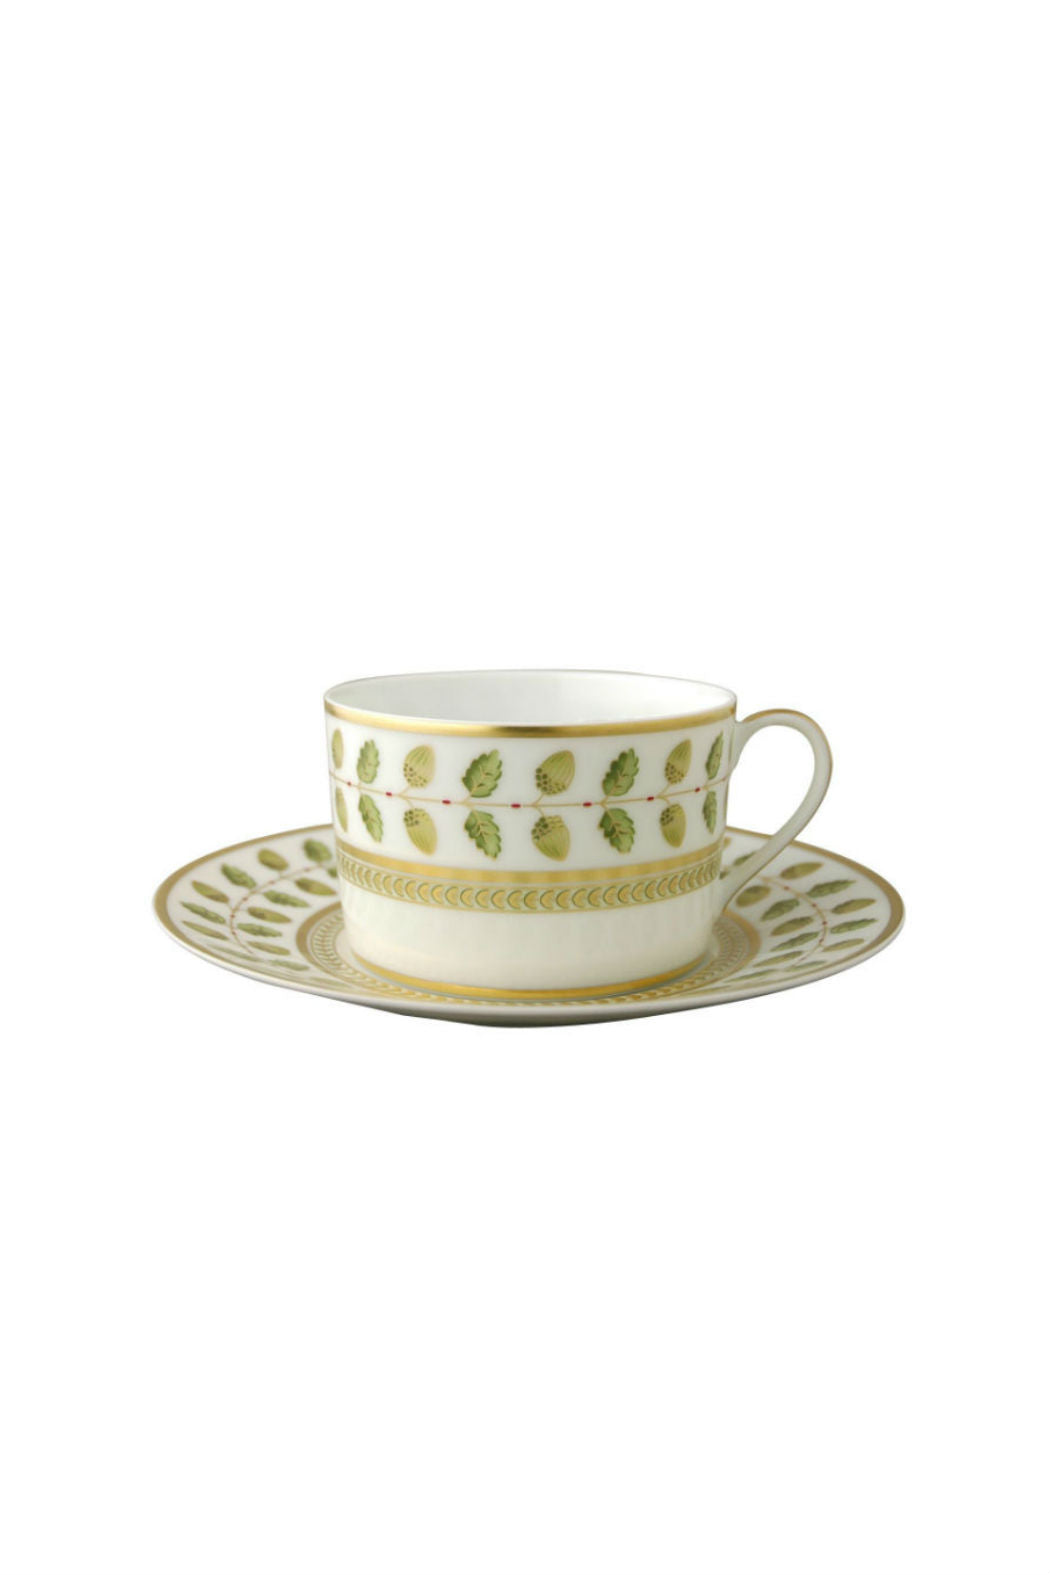 Bernardaud Constance Green Tea Cup and Saucer